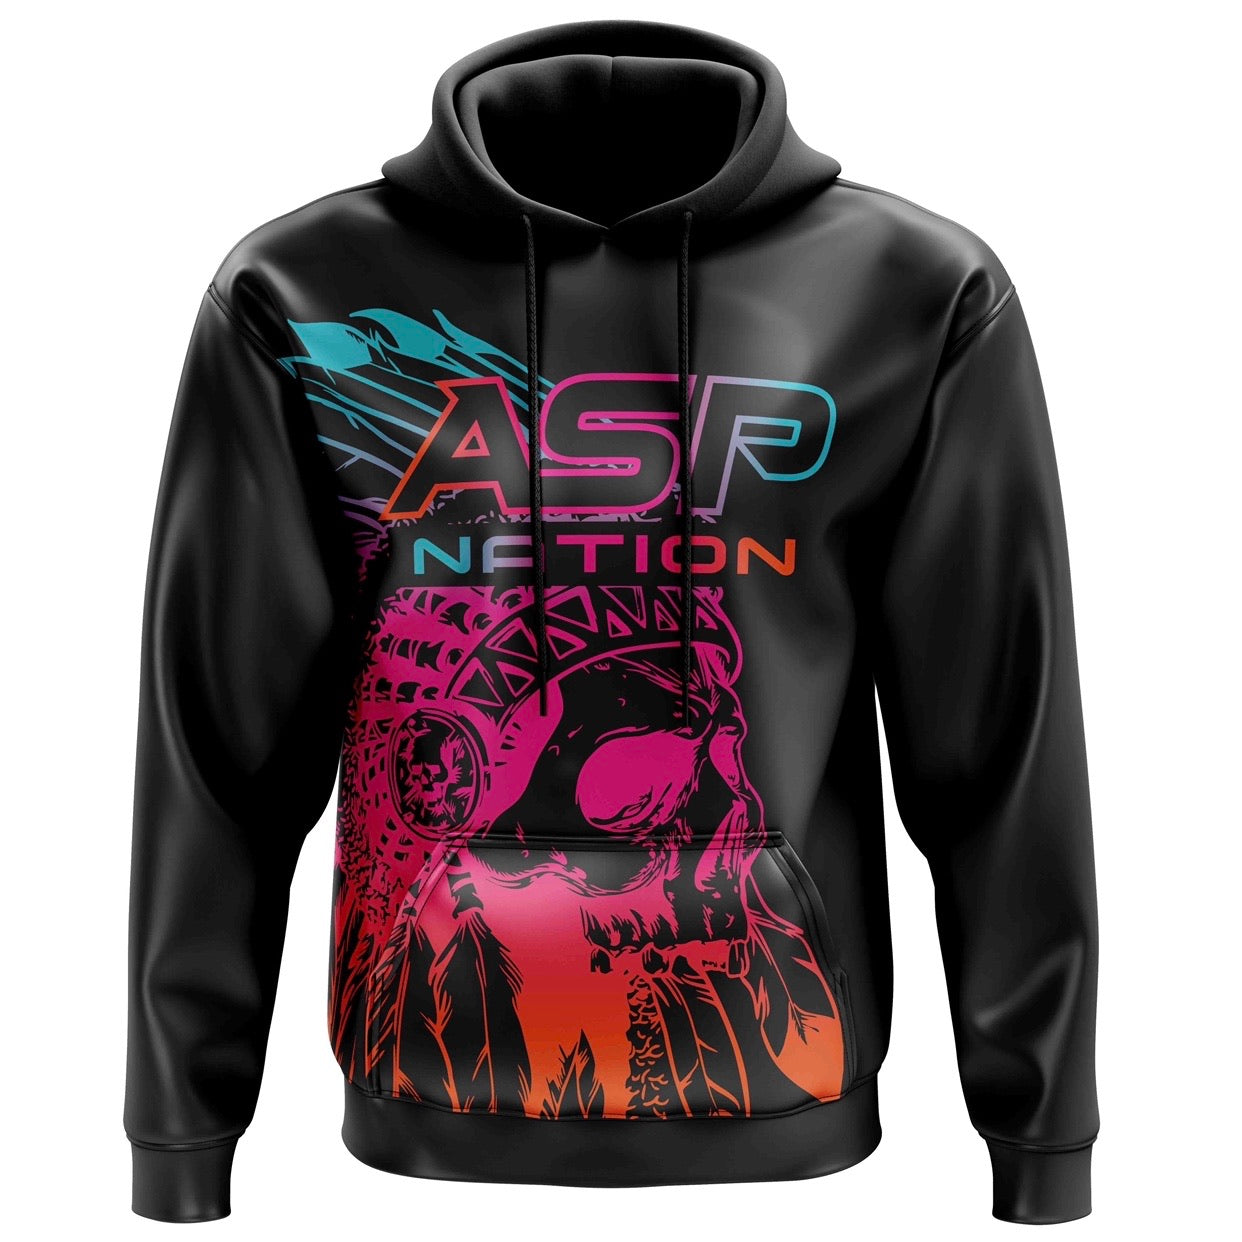 ASP Tribe Nation Series Hoodies (5 COLORS)